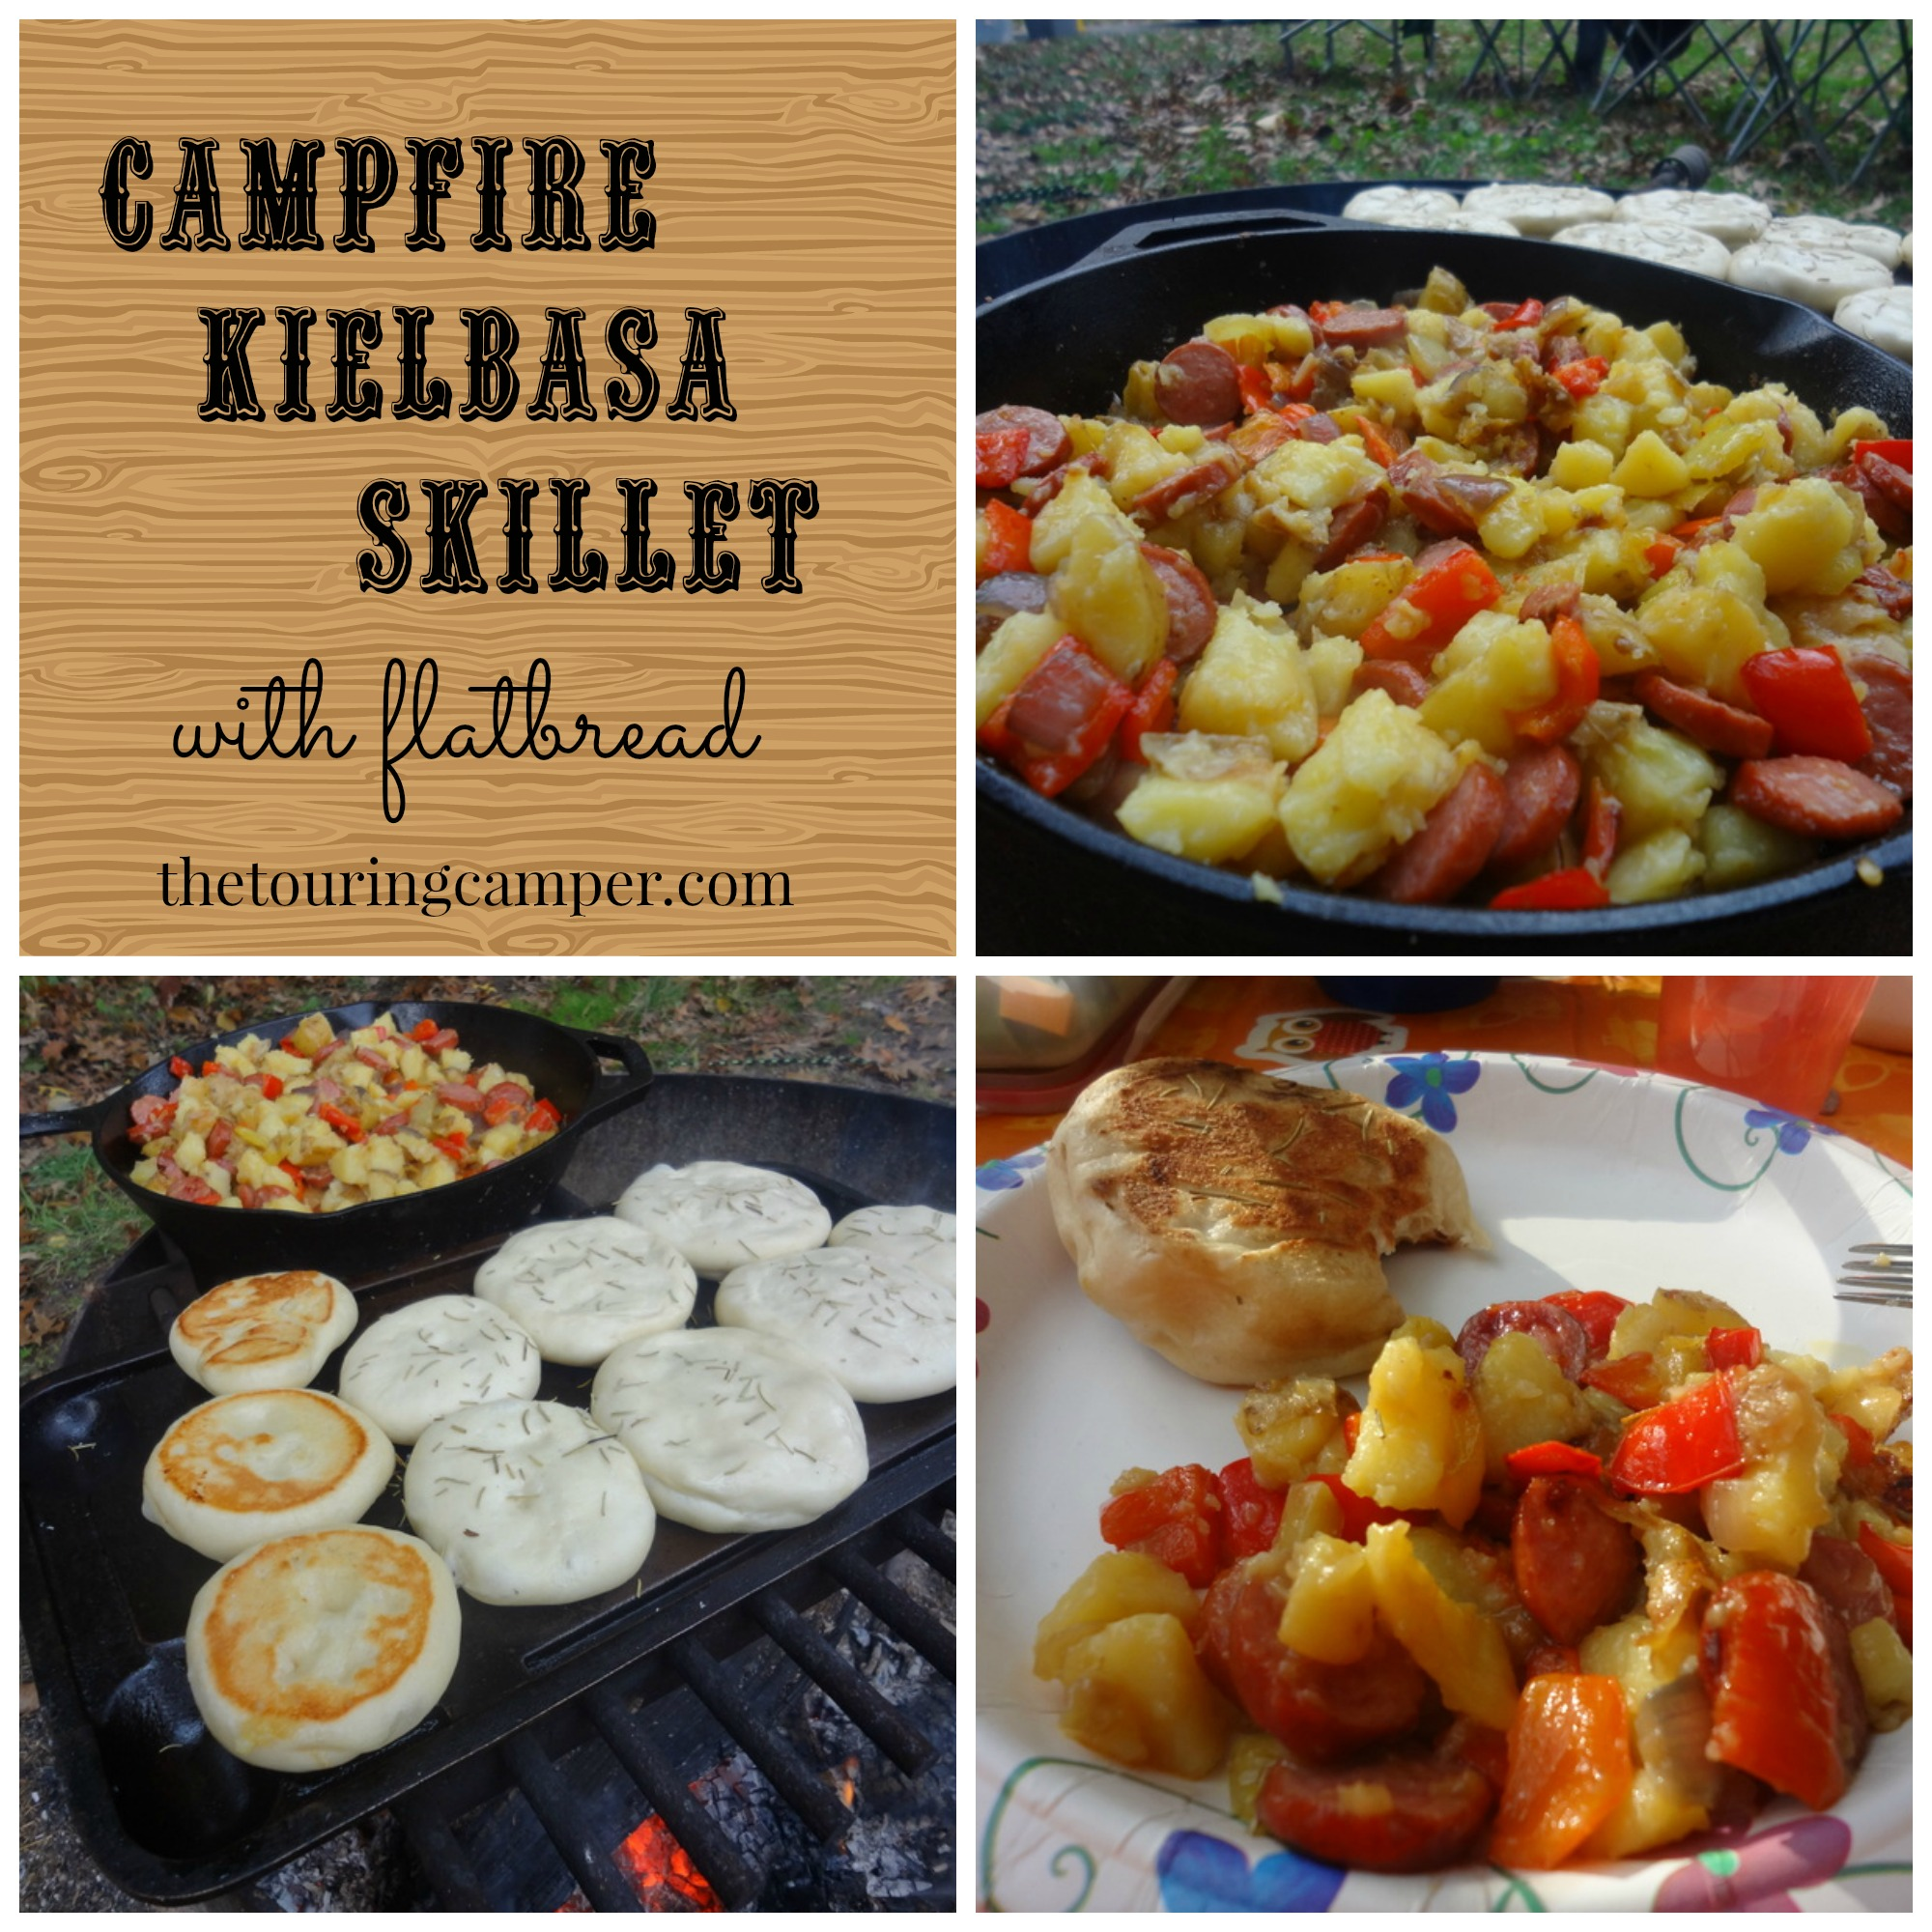 CampfireKielbasaSkilletwithFlatbreadCollage